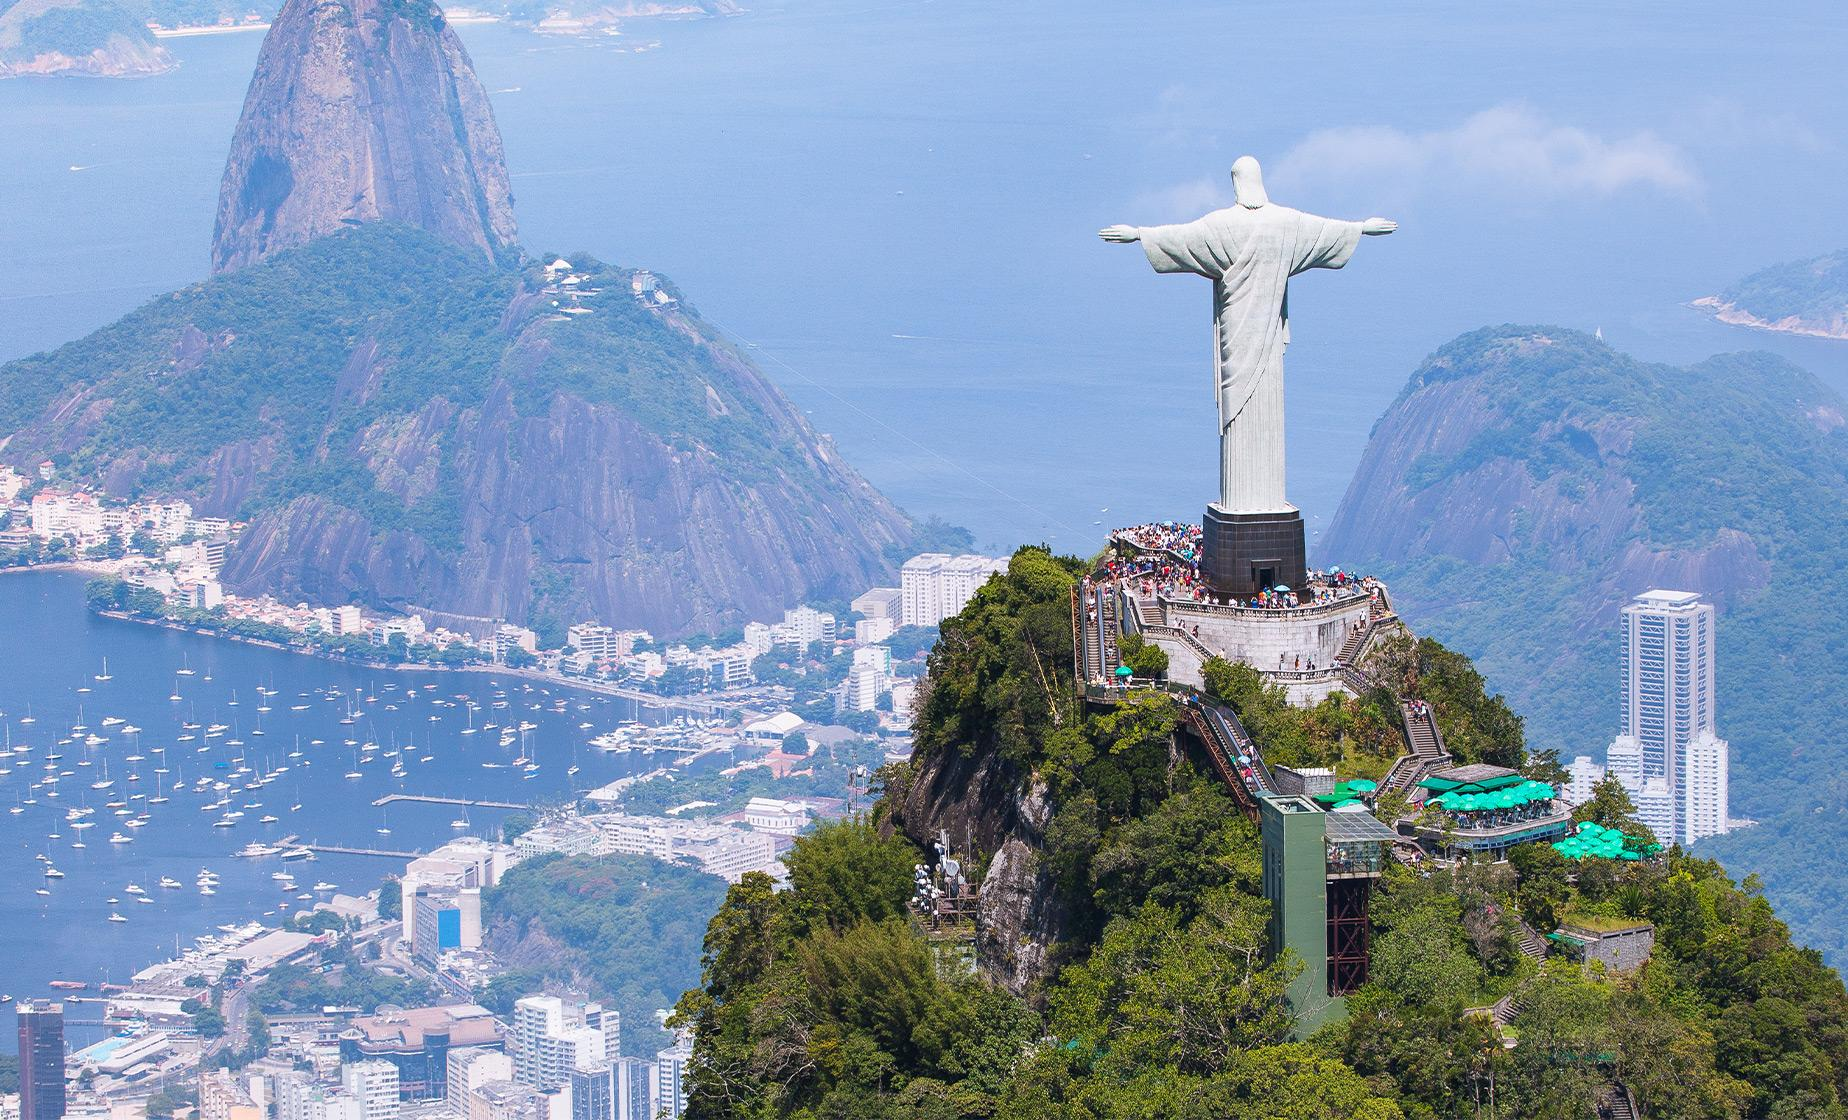 Corcovado and Christ the Redeemer Statue